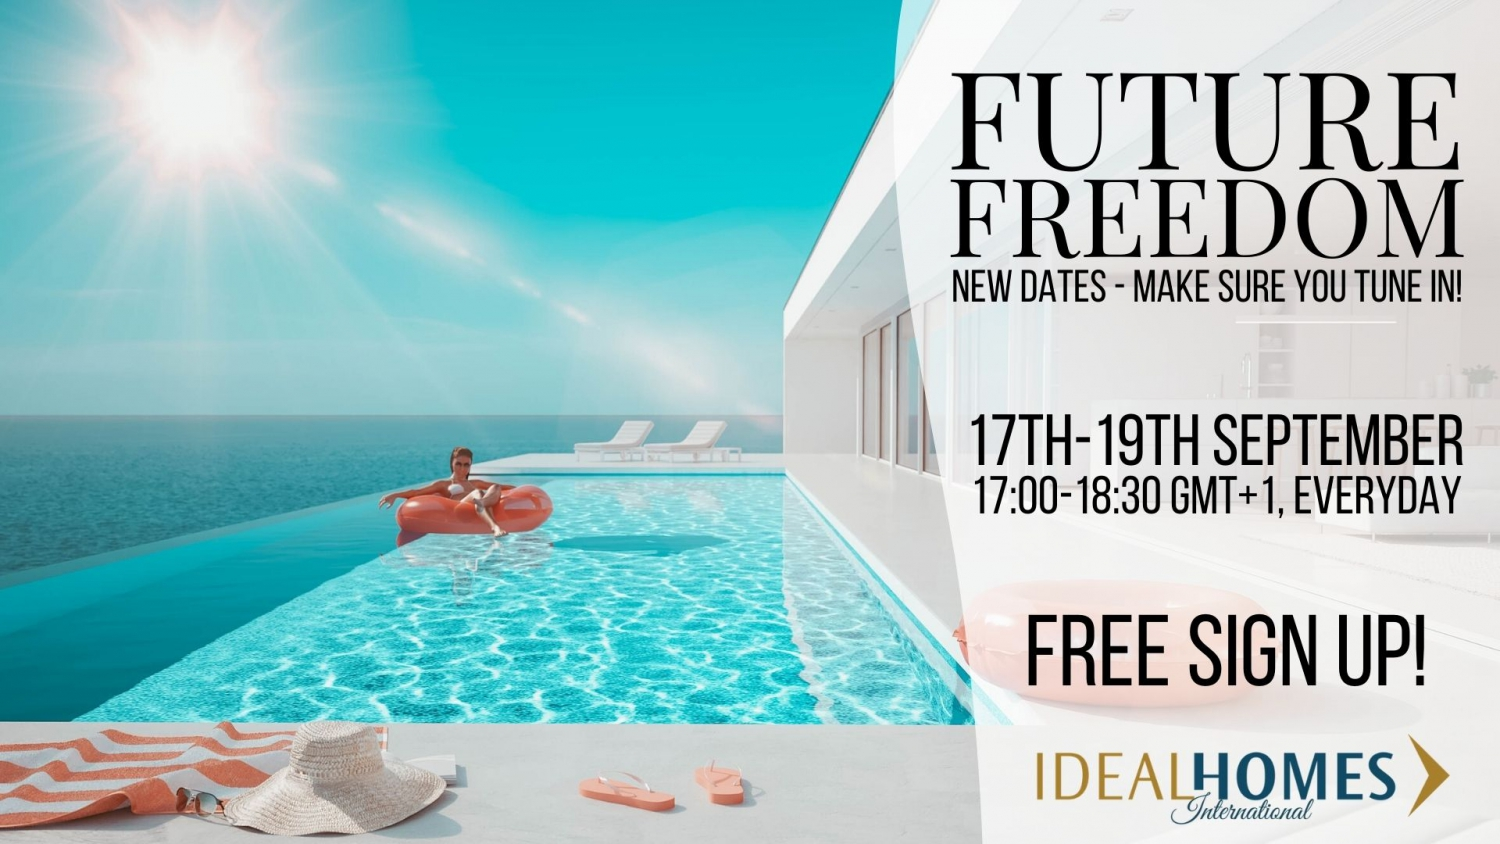 Future Freedom - Life is what you make it... Make it count!